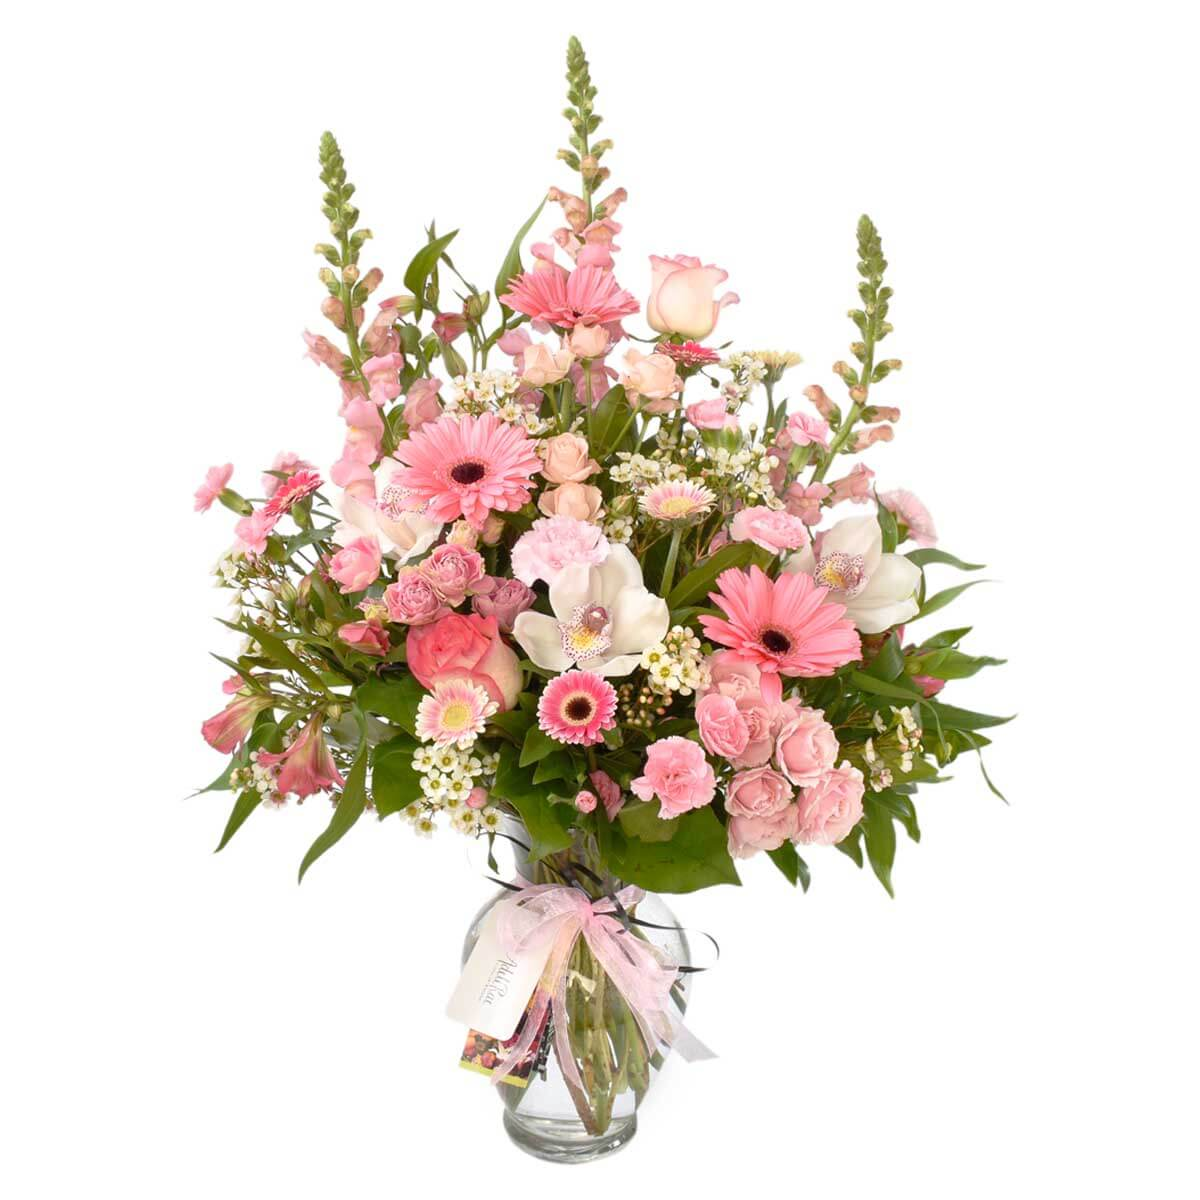 Mother's day flower delivery in Burnaby BC - Adele Rae Florist